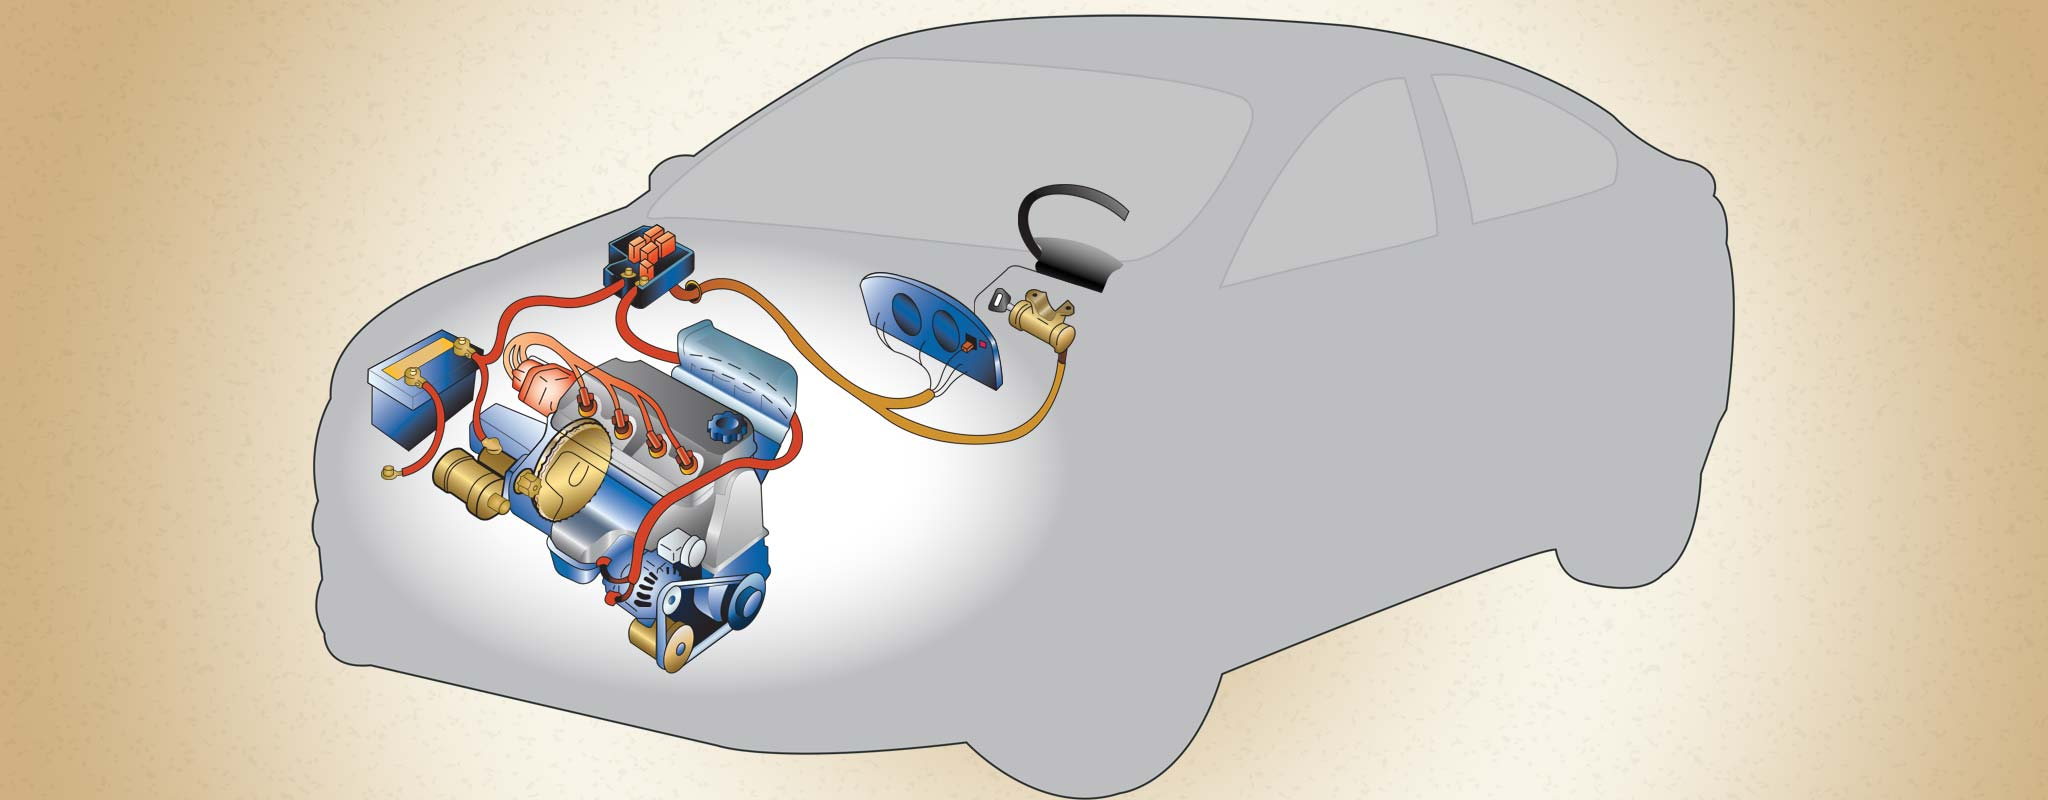 An illustration of a cars electrical system.